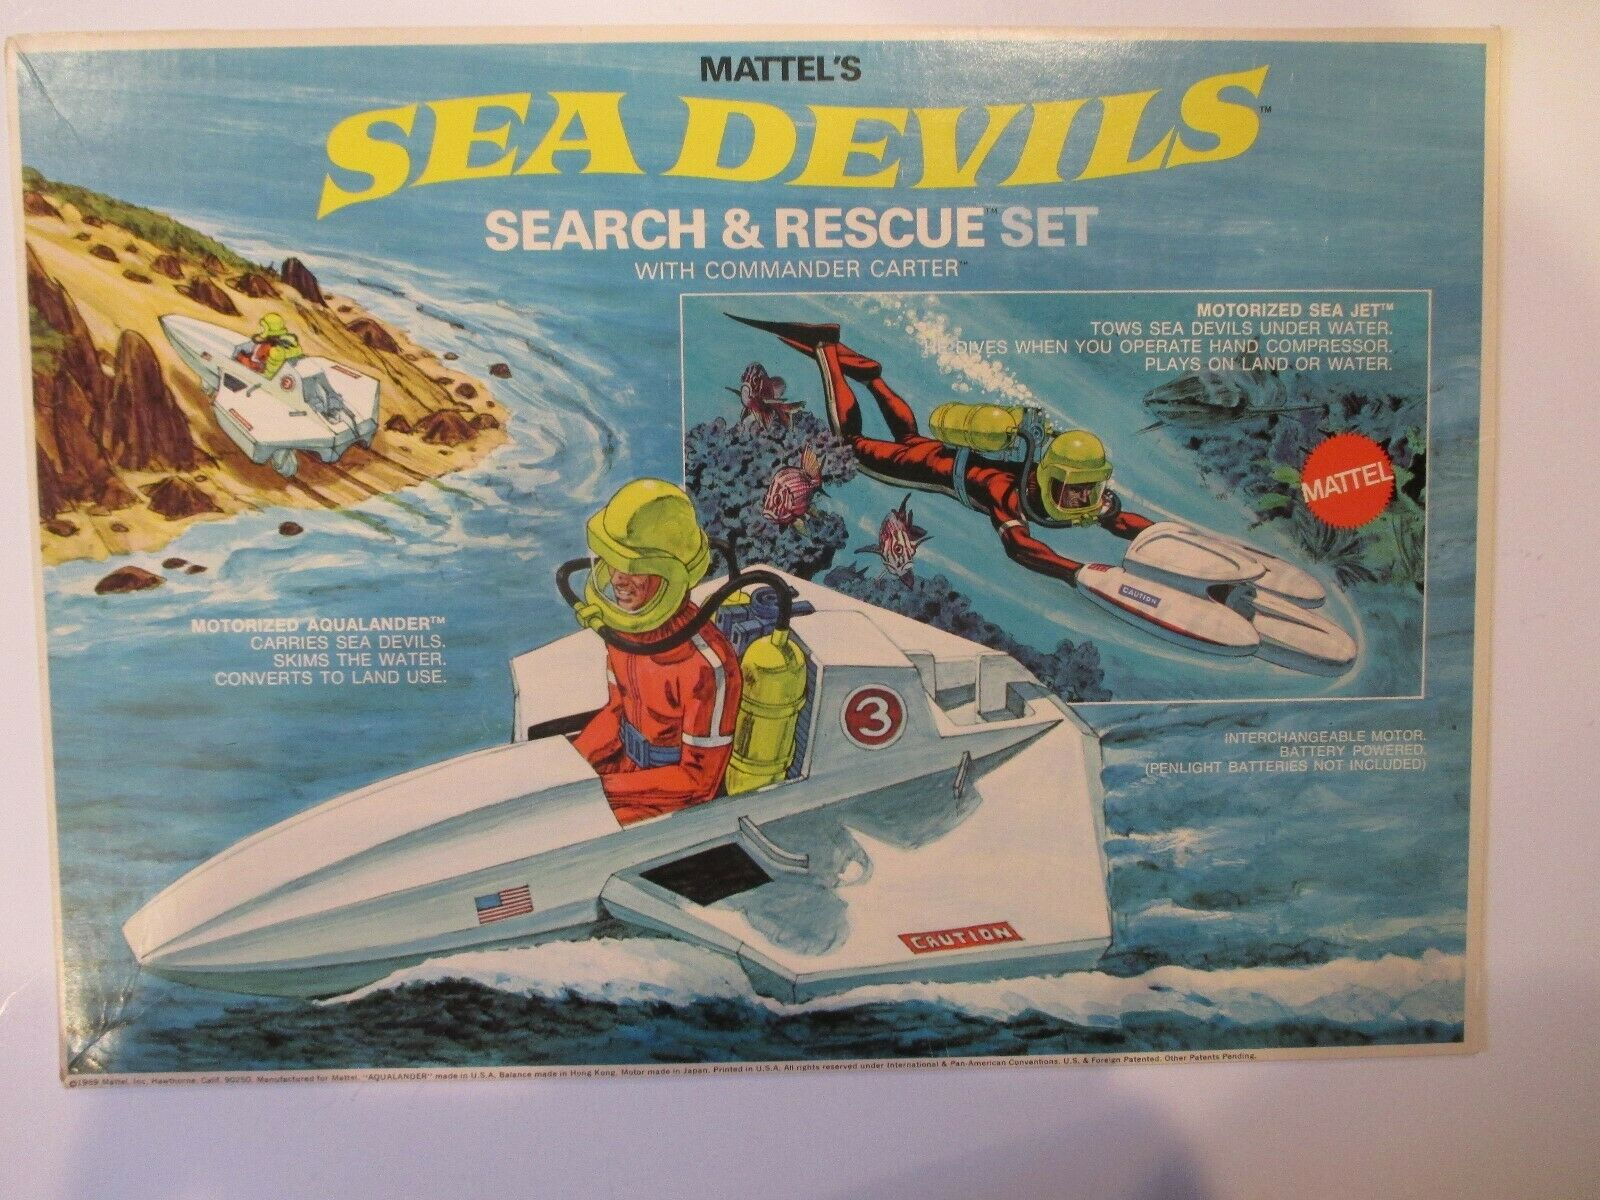 1969 MATTEL SEA DEVILS SEARCH AND RESCUE PLAYSET ORIGINAL BOX ART SUPER RARE